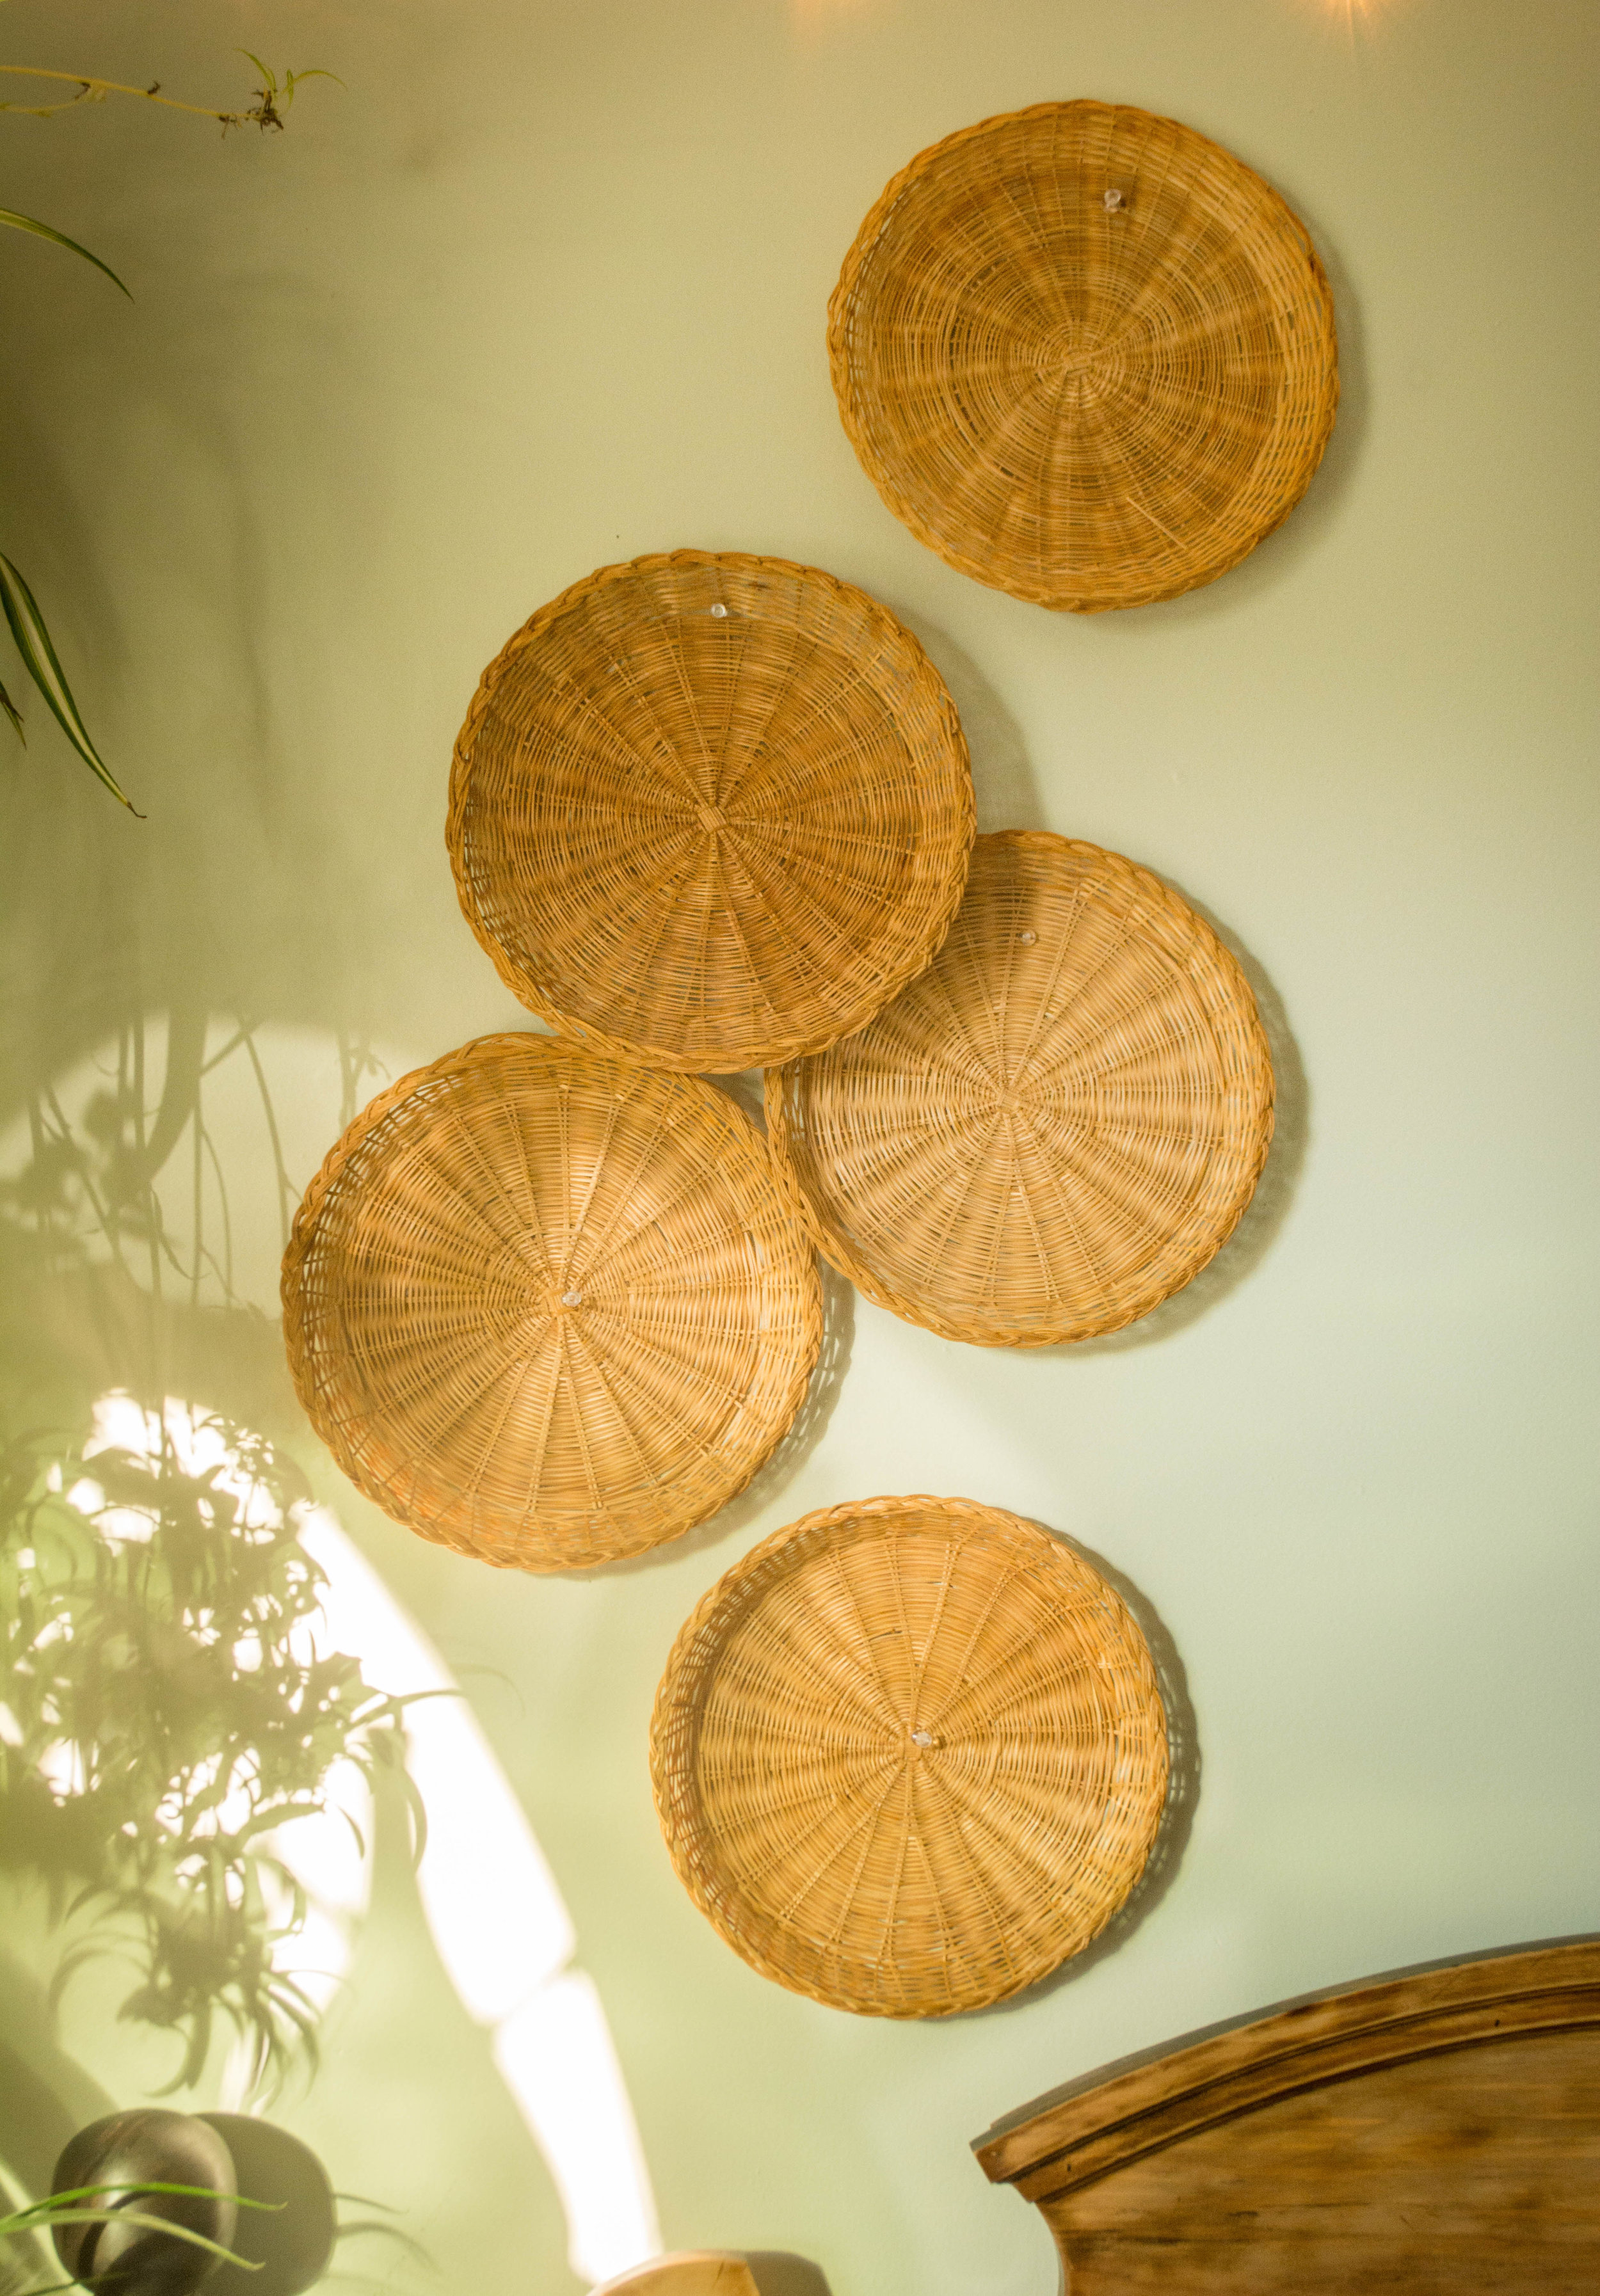 Bohemian Style Wicker Wall Decor Baskets Ruinous Revived